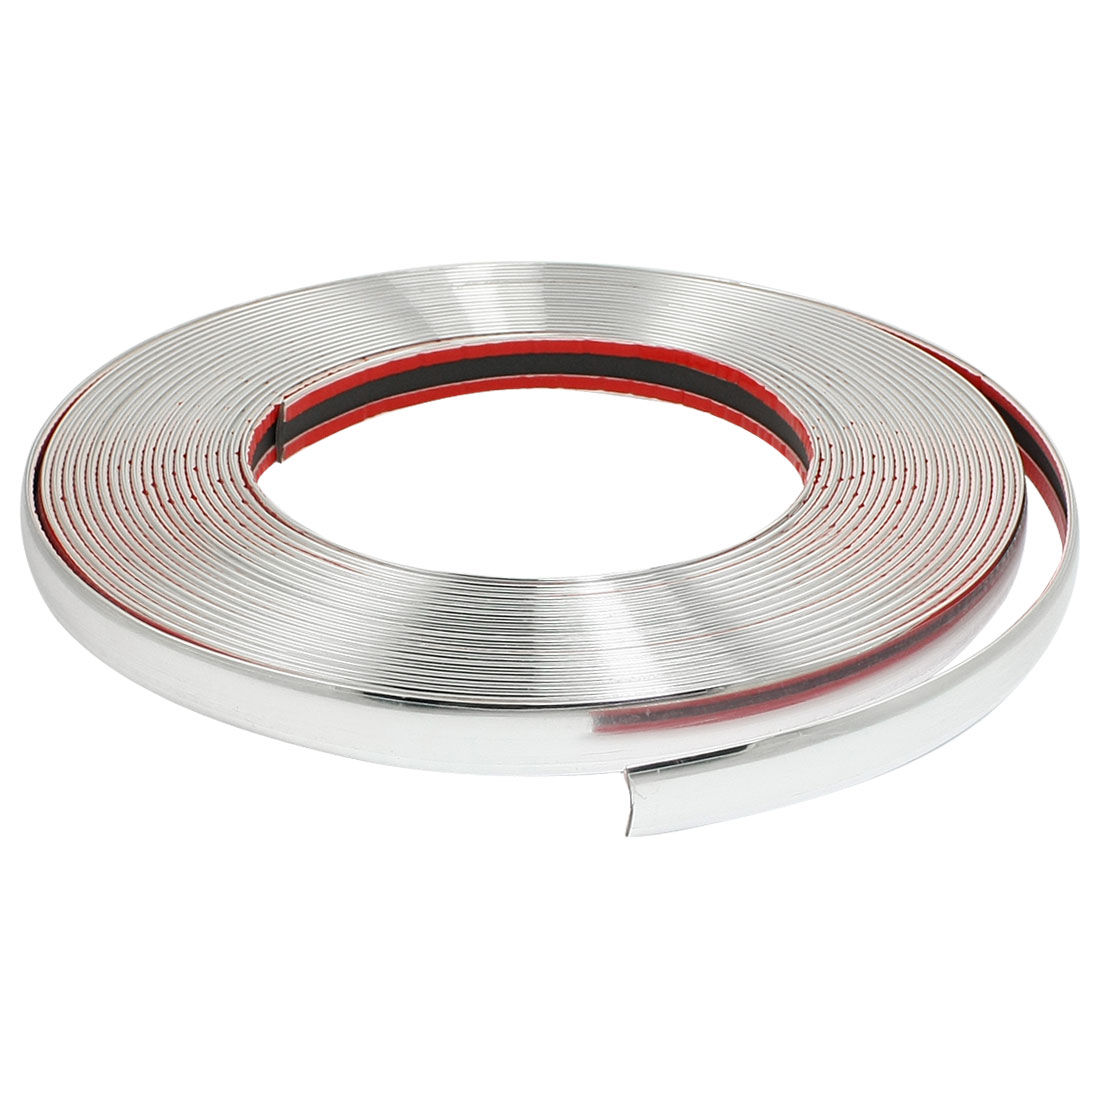 Car Auto 7mm x 15M Flexible Plastic Chrome Moulding Trim Strip Line Silver Tone